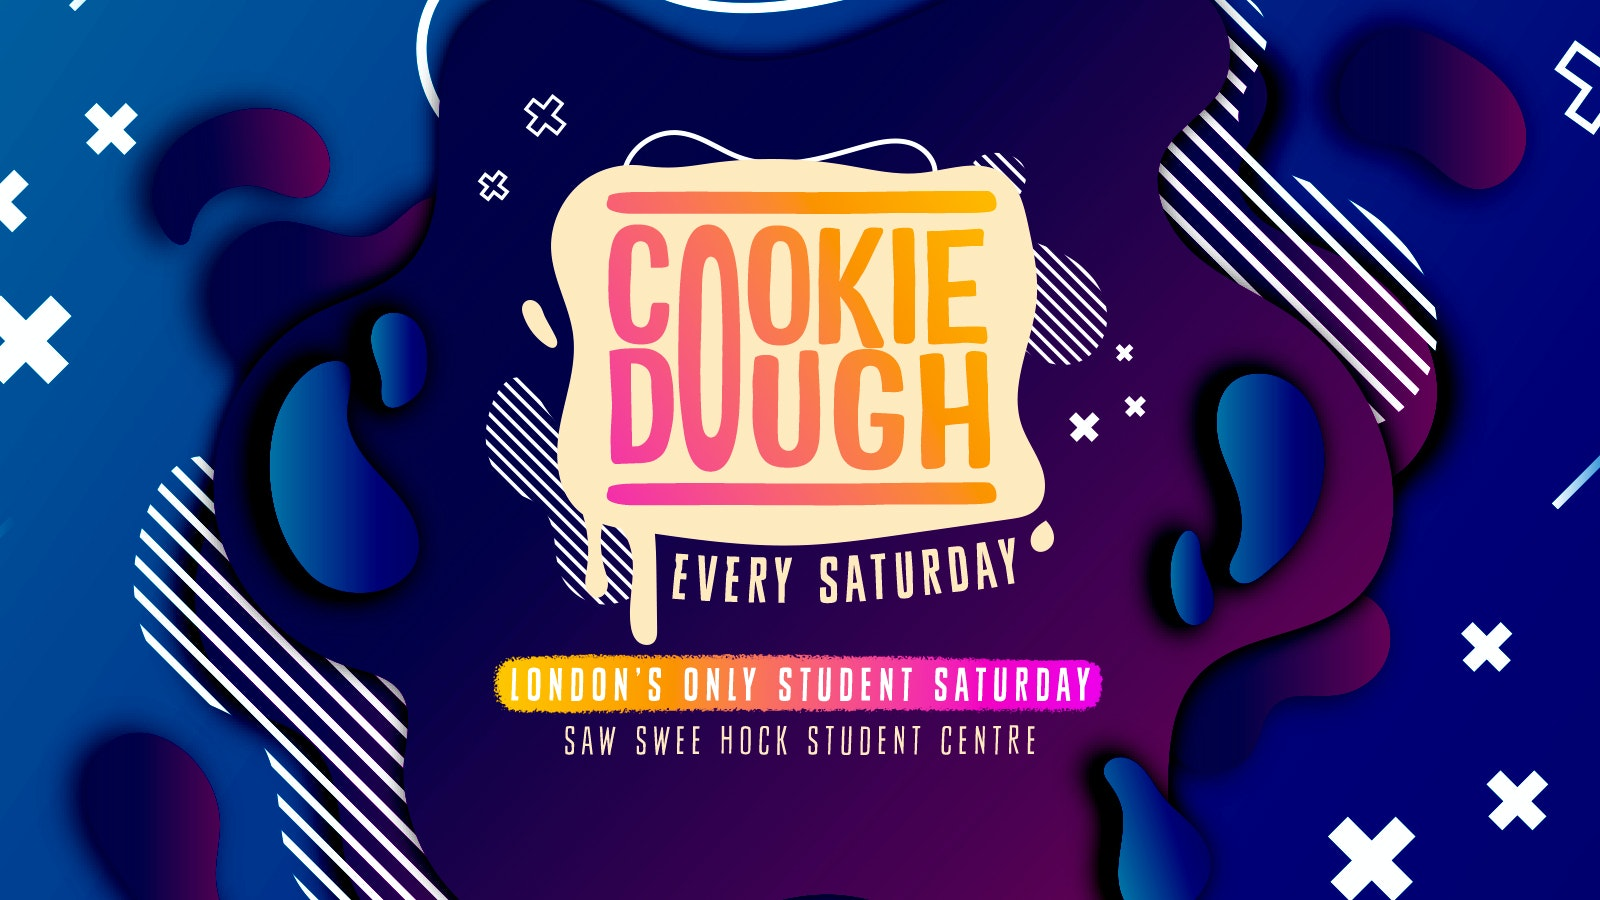 Cookie Dough / Every Saturday / 19.10 ✅🚨 – DJ AR! £3 TICKETS SOLD OUT! £5 TICKETS SELLING FAST